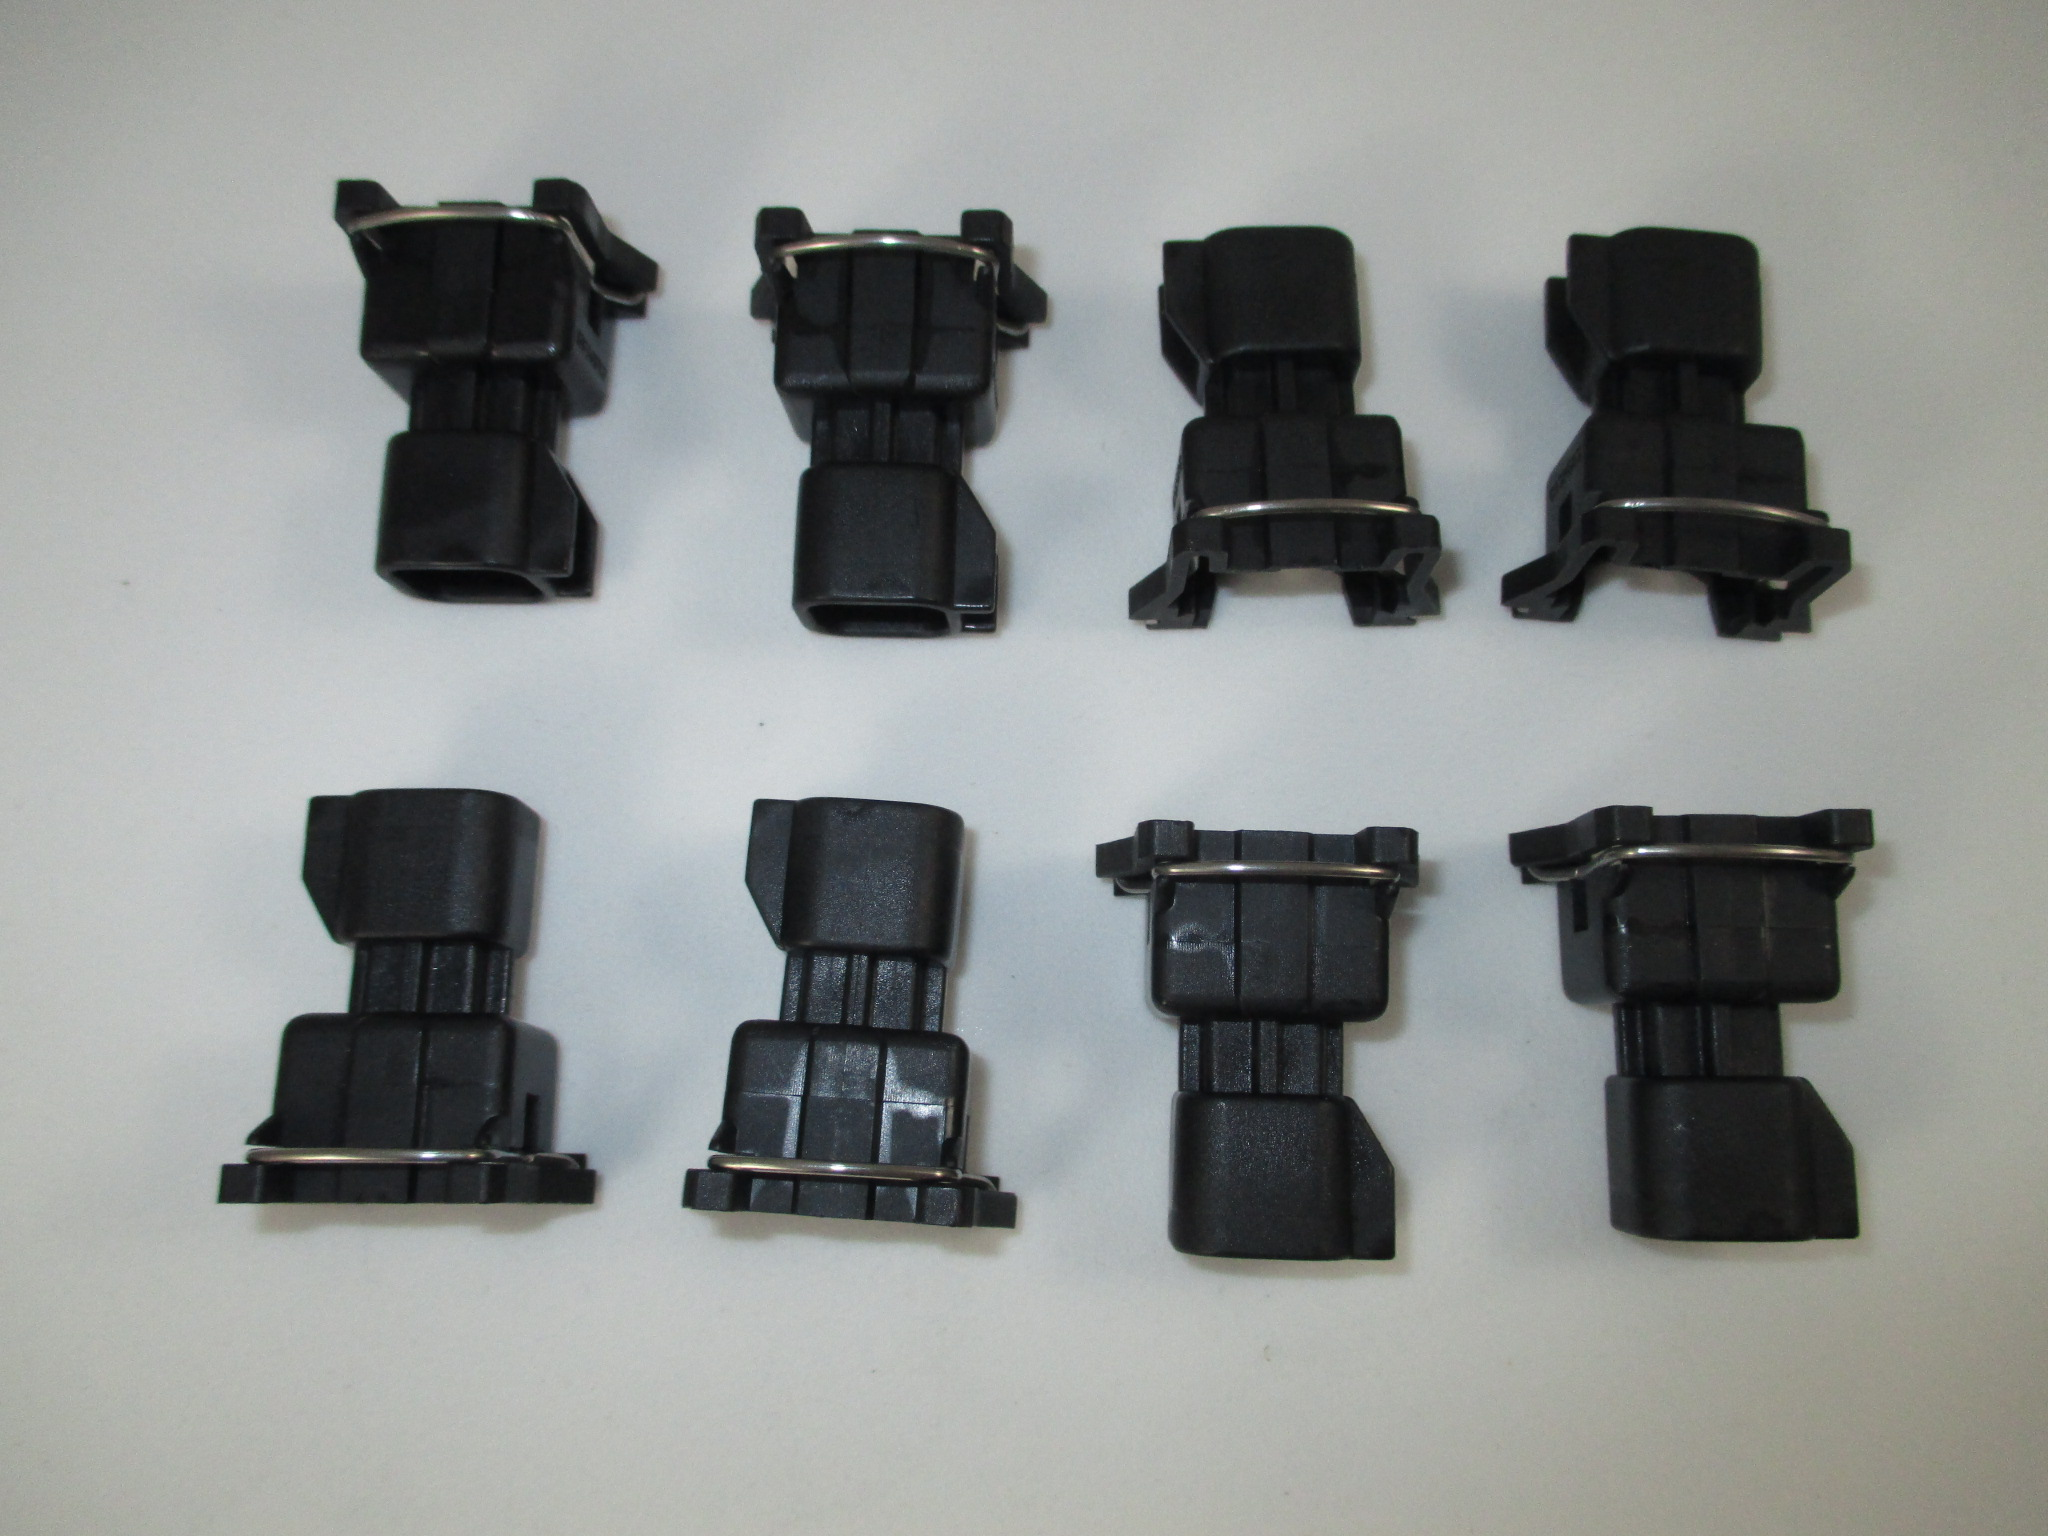 EV6 to EV1 Injector Adapters - LS2 LS3 LSX harness to LS1 style Injectors